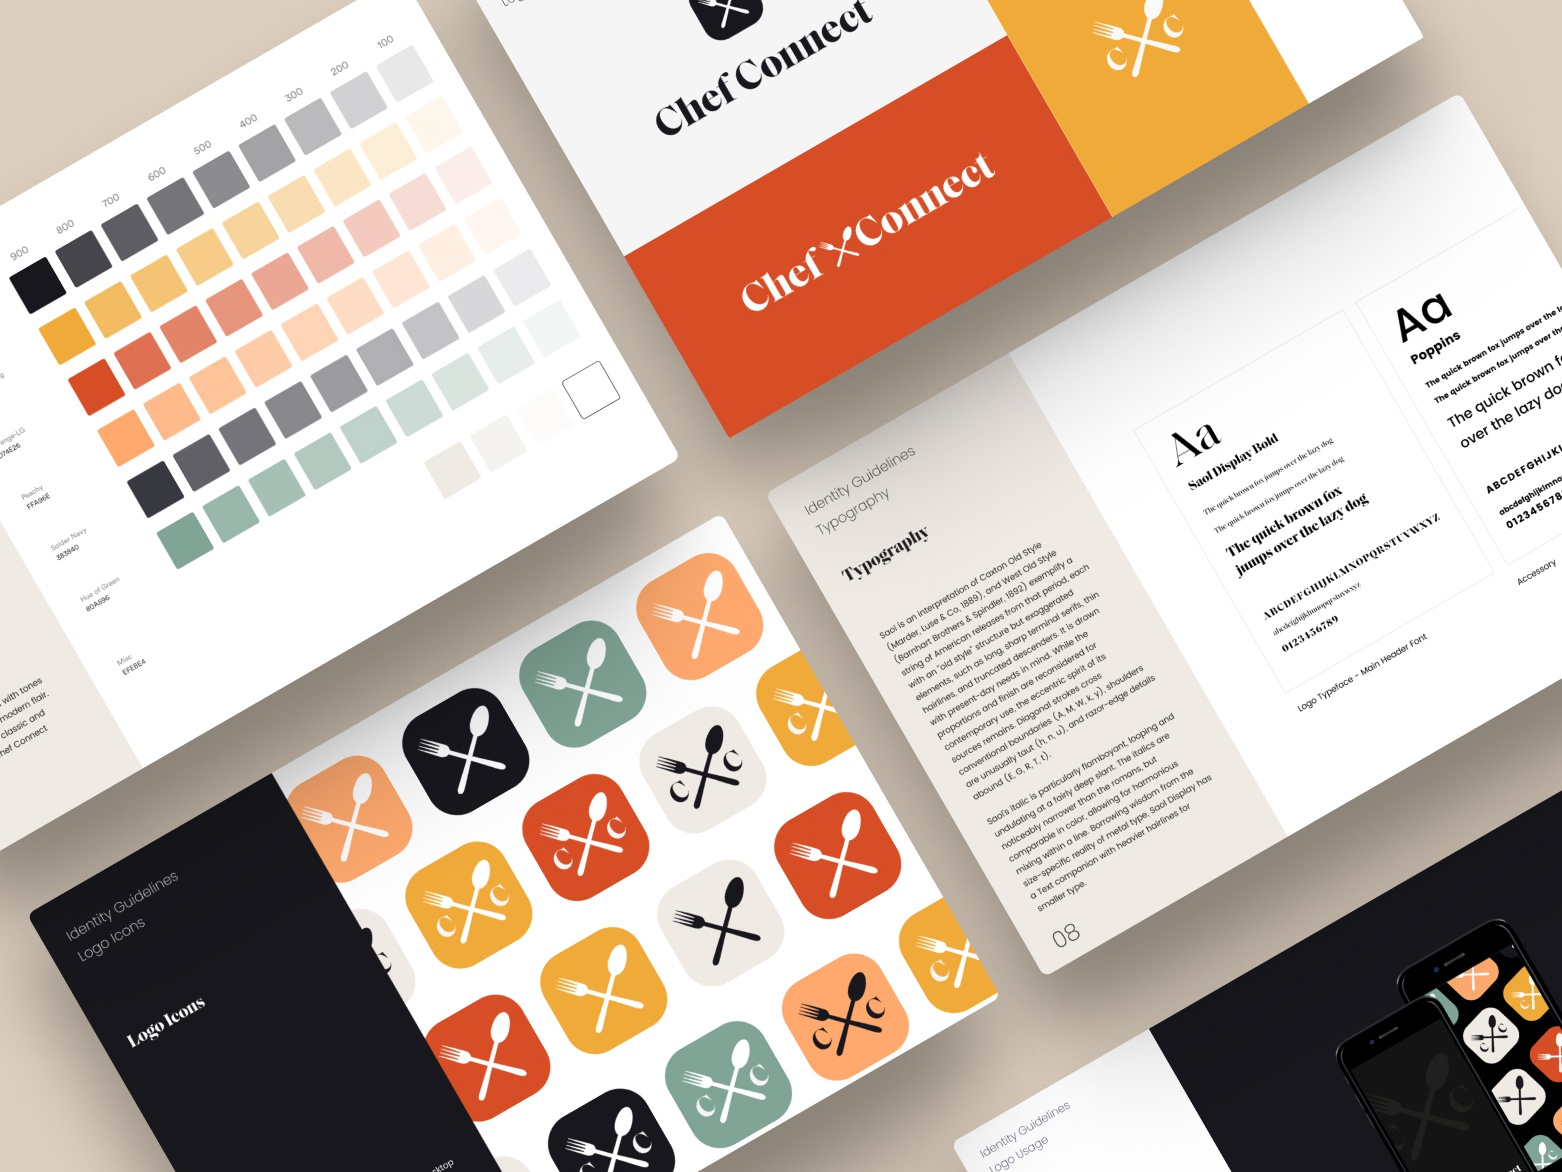 Chef Connect Brand Guide redesign logo guides style guides styleguide brand style guide rebrand brand brand guide keynote powerpoint slides design branding